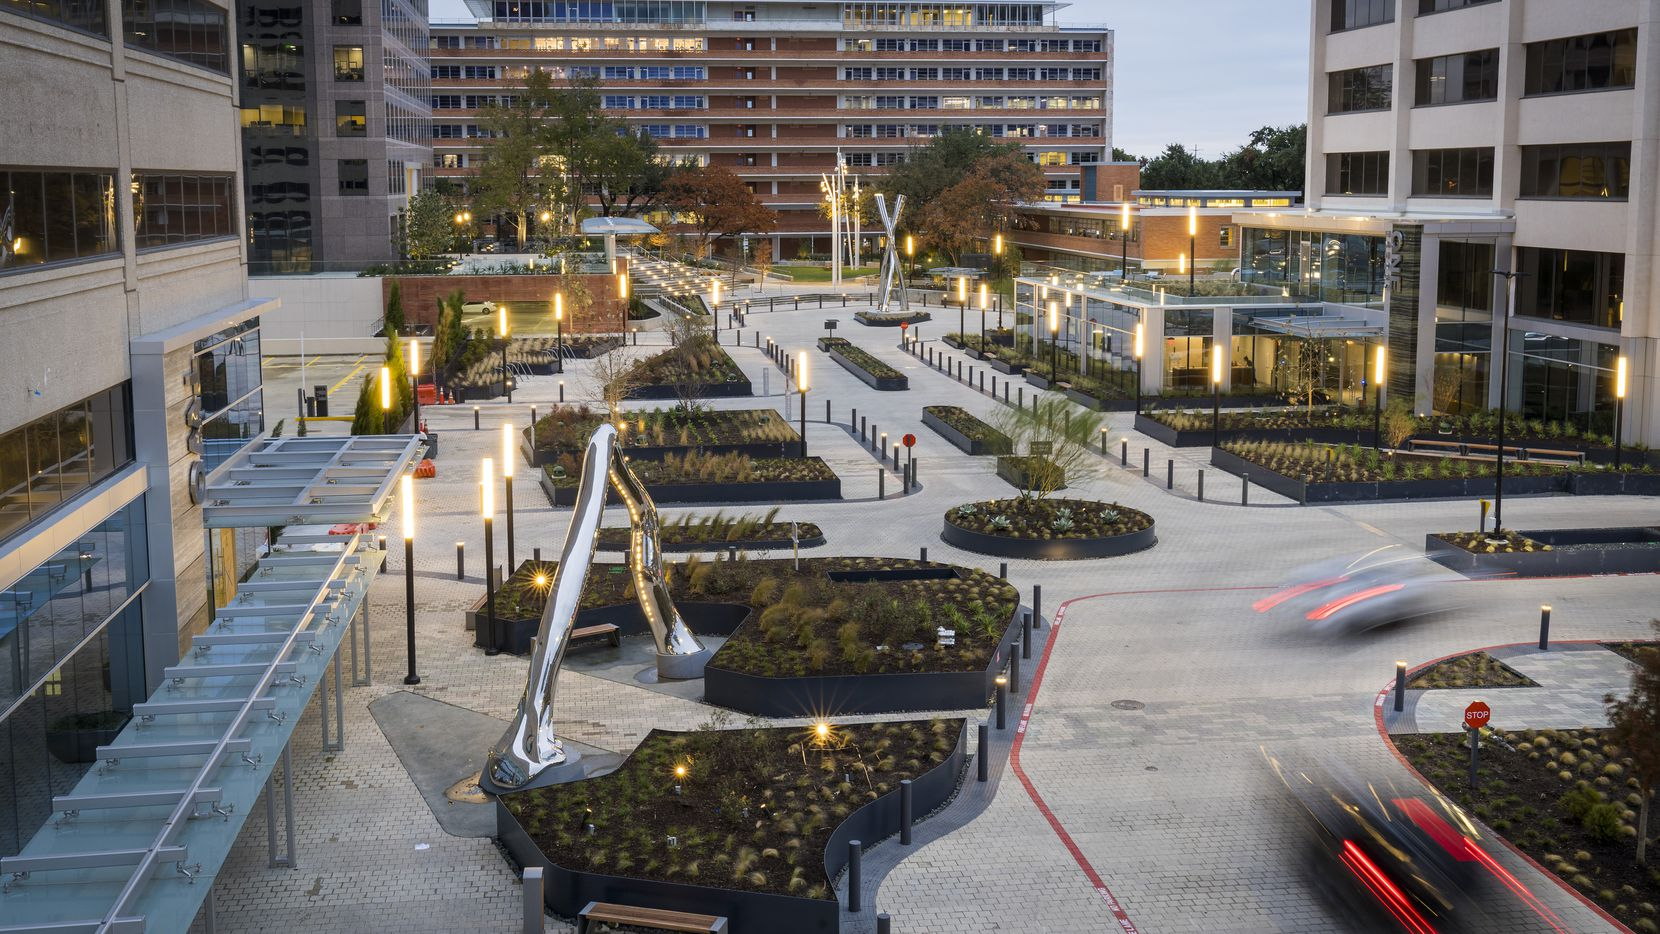 USAA Real Estate's largest investment in North Texas is its stake in the Energy Square campus. (Smiley N. Pool/The Dallas Morning News)